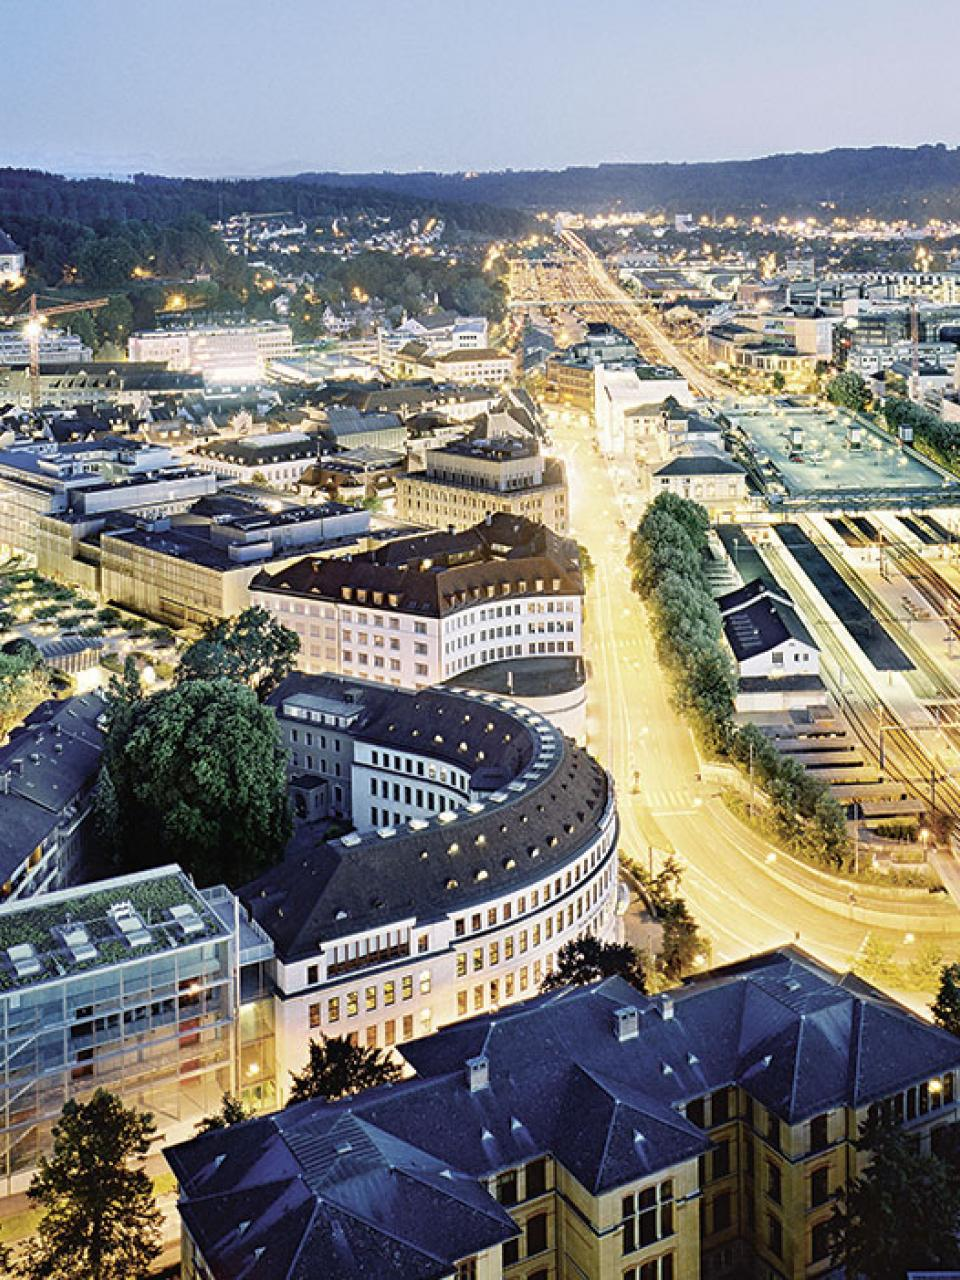 Smart City Winterthur © Michael Lio